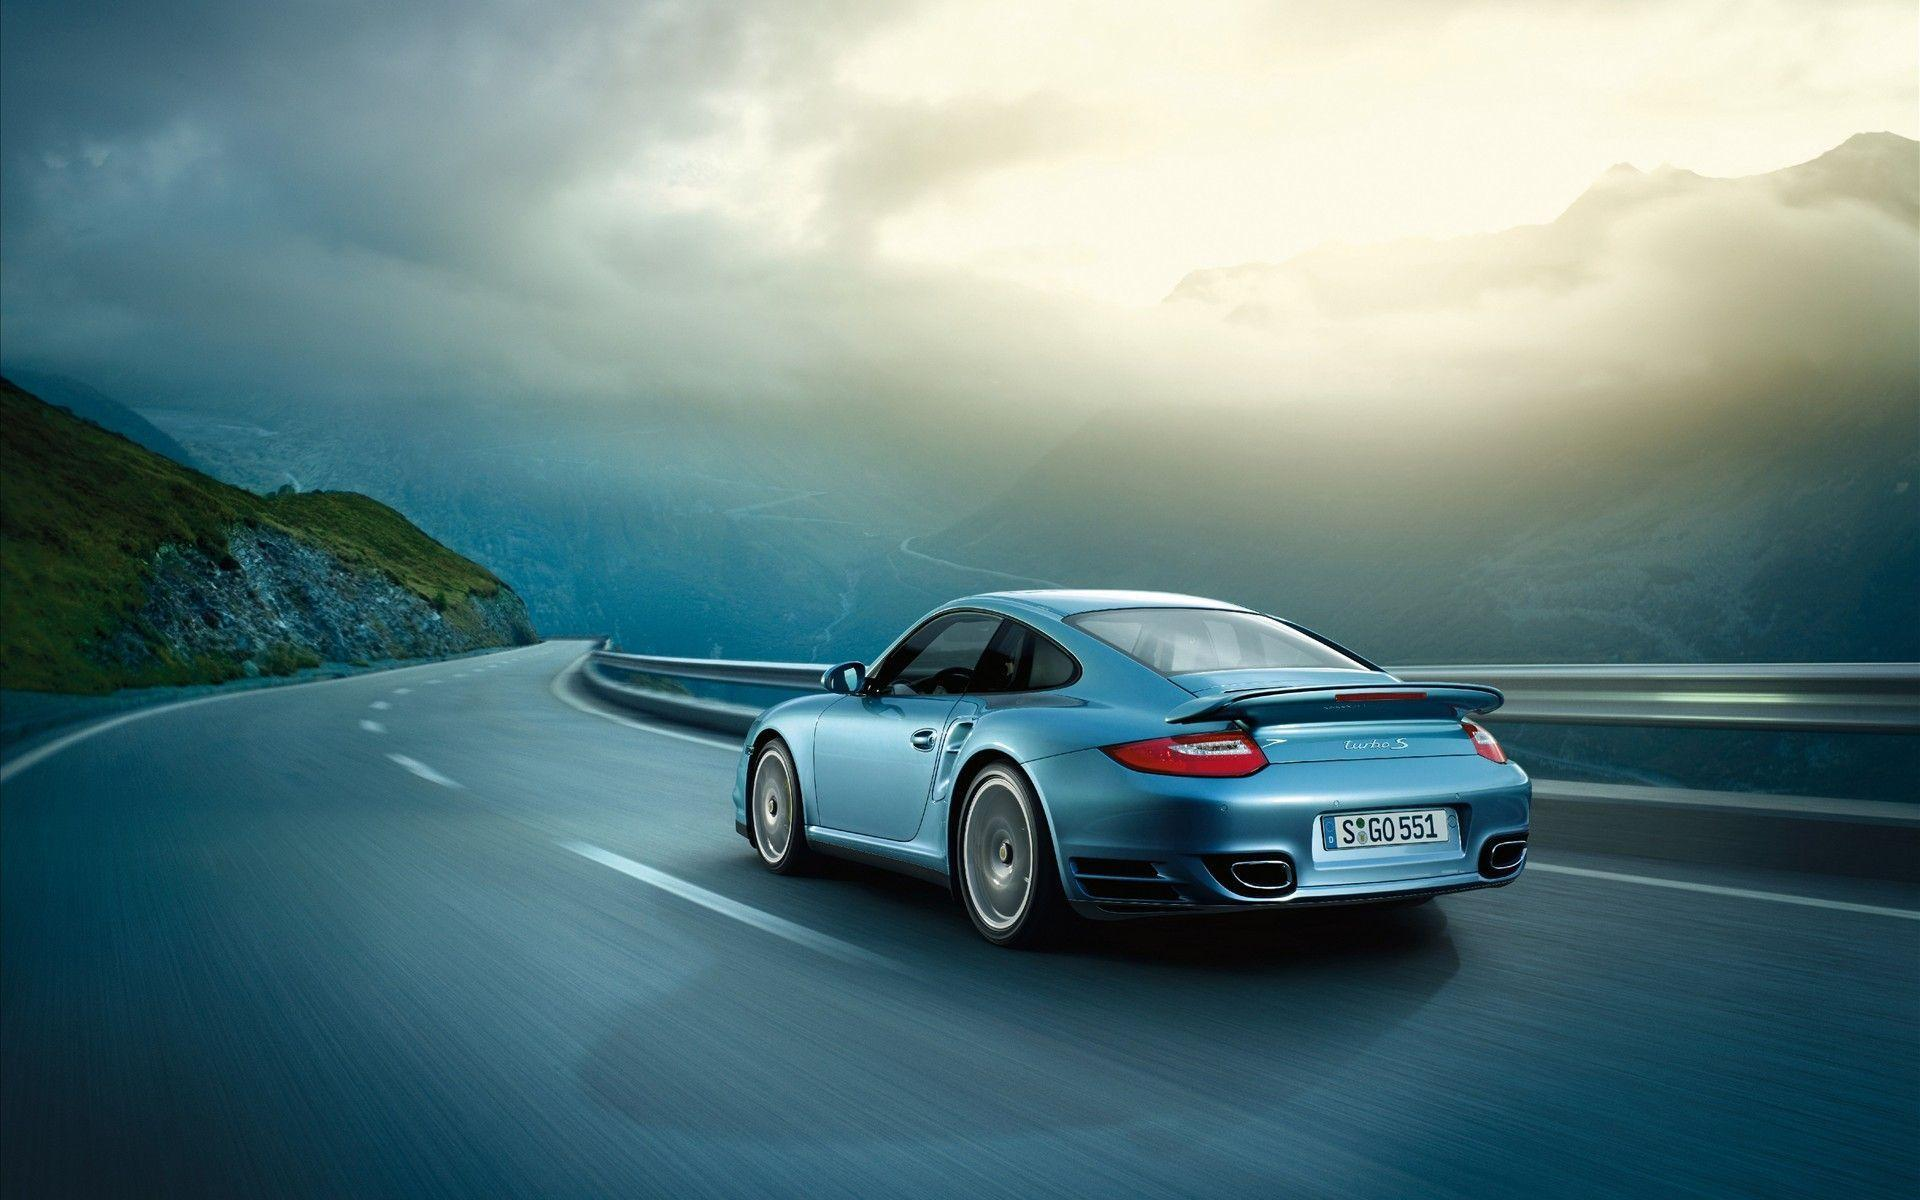 2011 Porsche 911 Turbo S 2 Wallpaper | HD Car Wallpapers